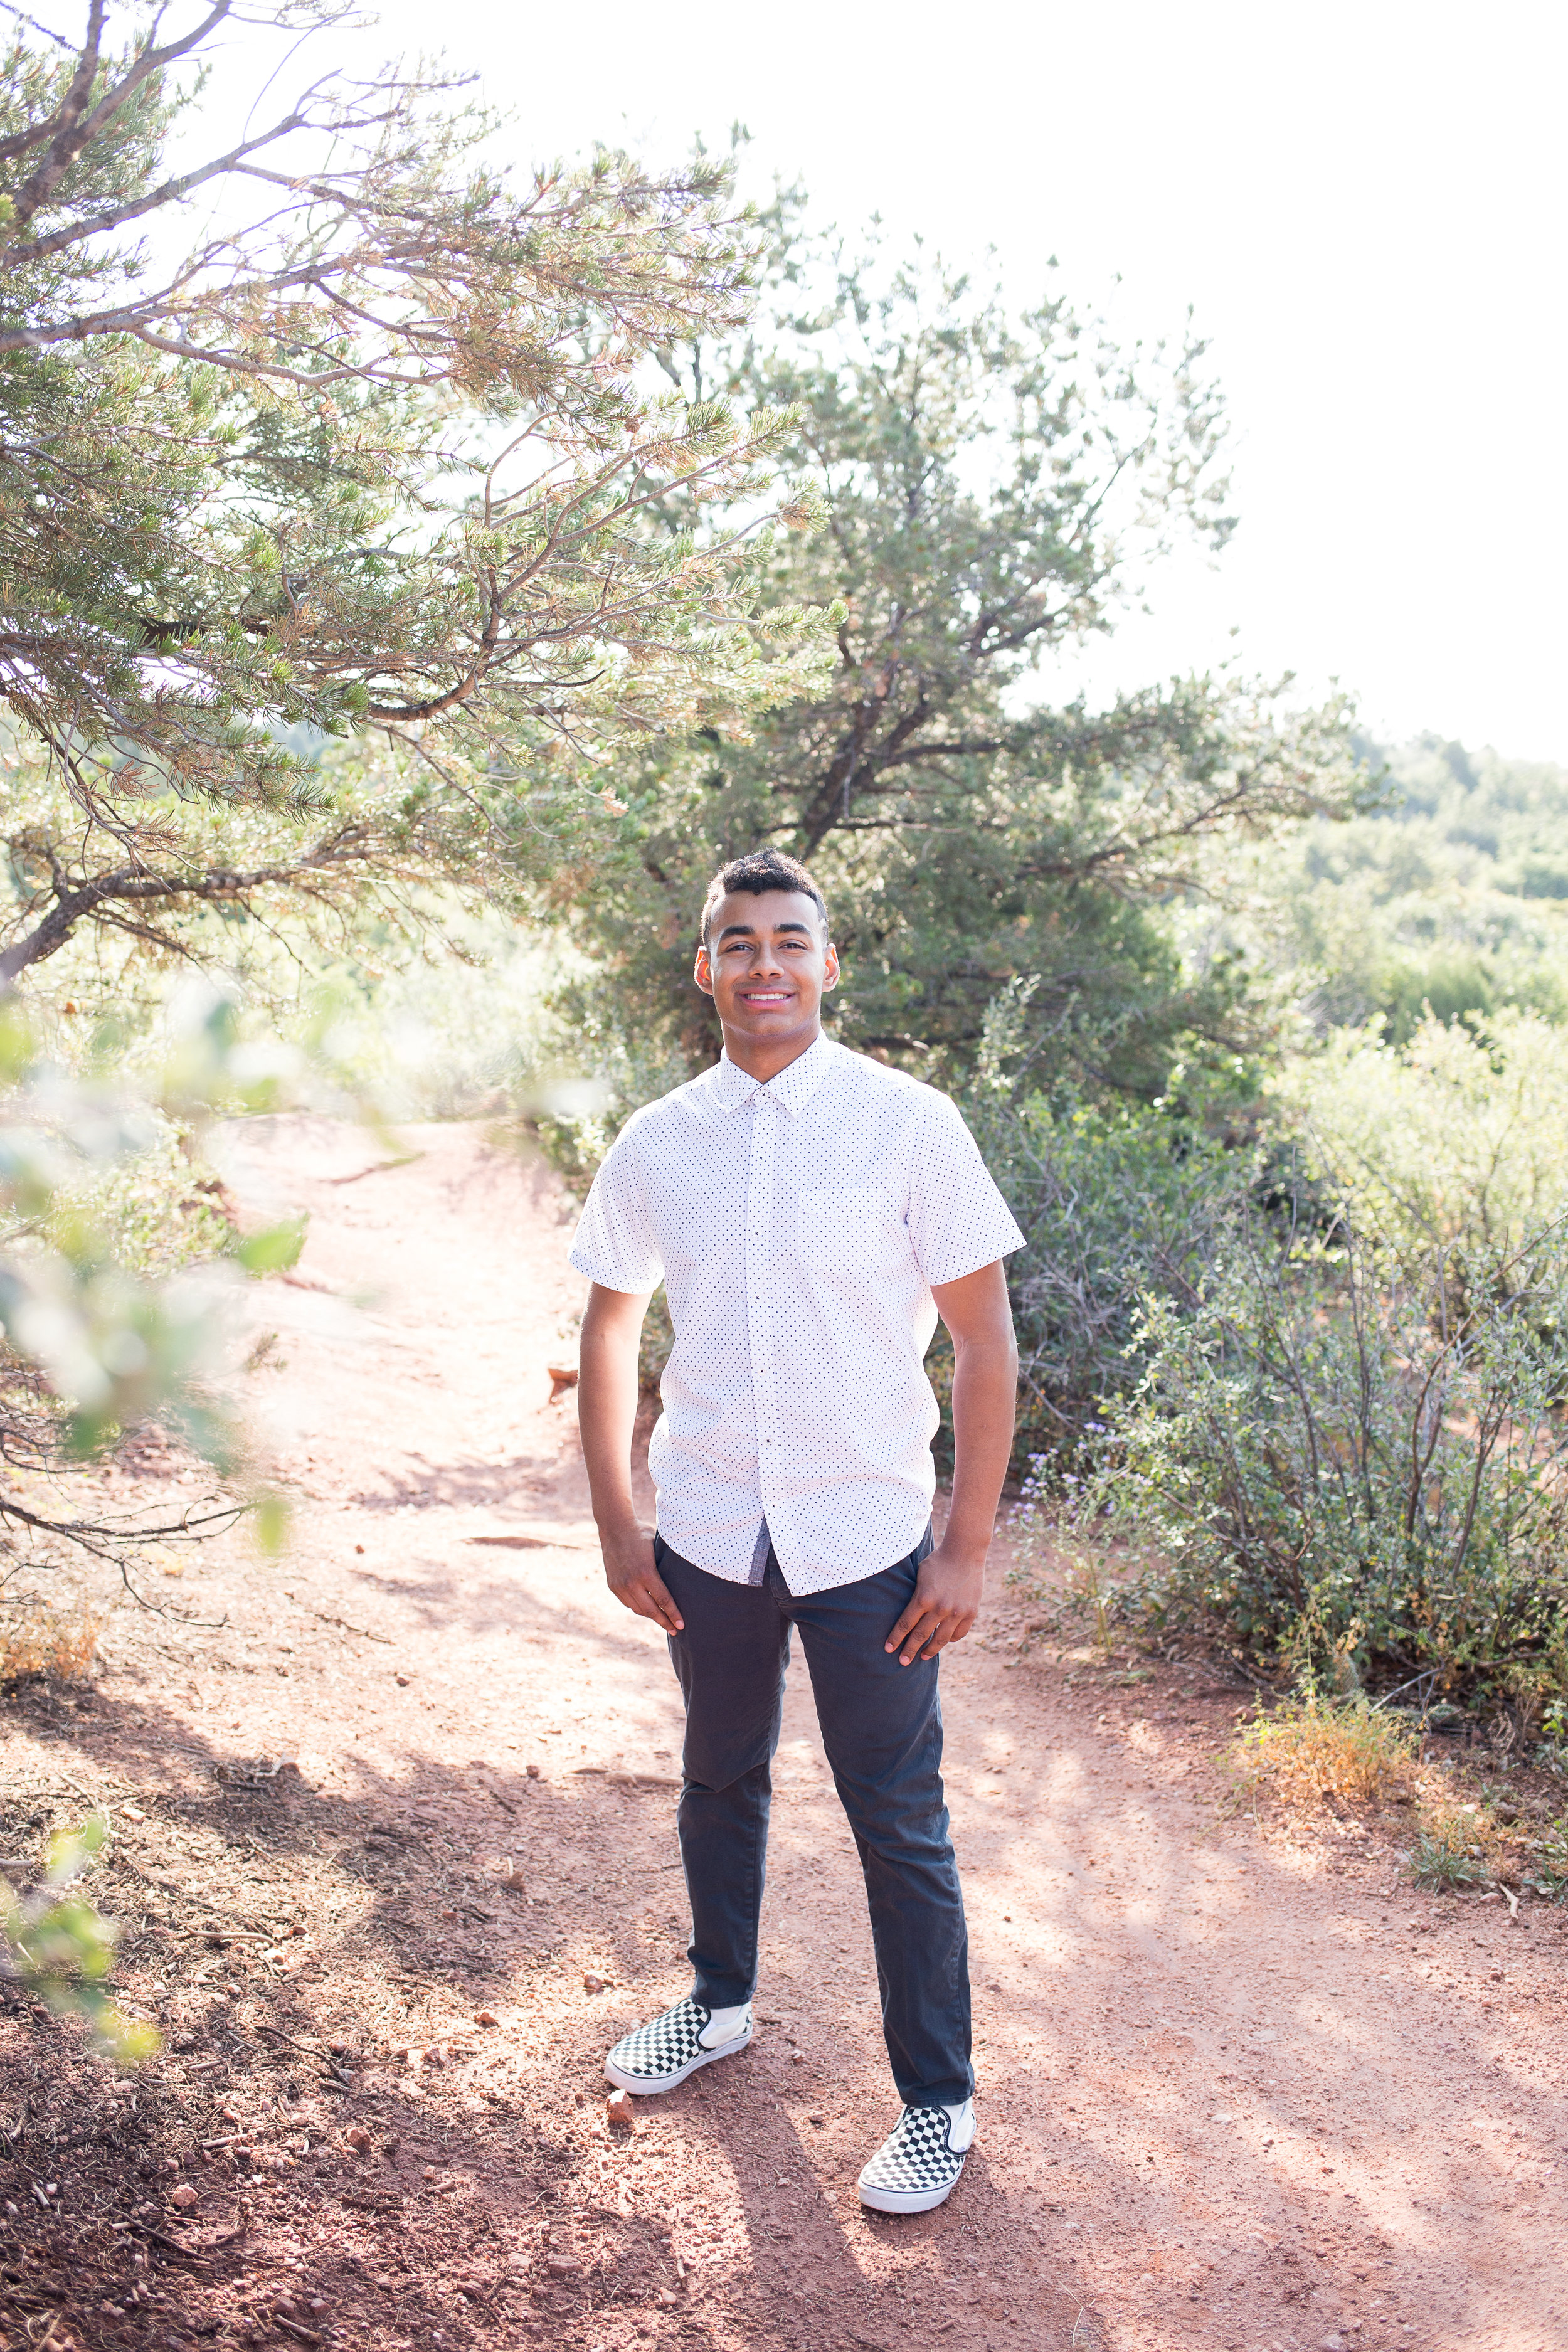 High s chool senior boy standing amount the trees in Garden of the Gods for his Liberty High School senior photos, Stacy Carosa Photgraphy